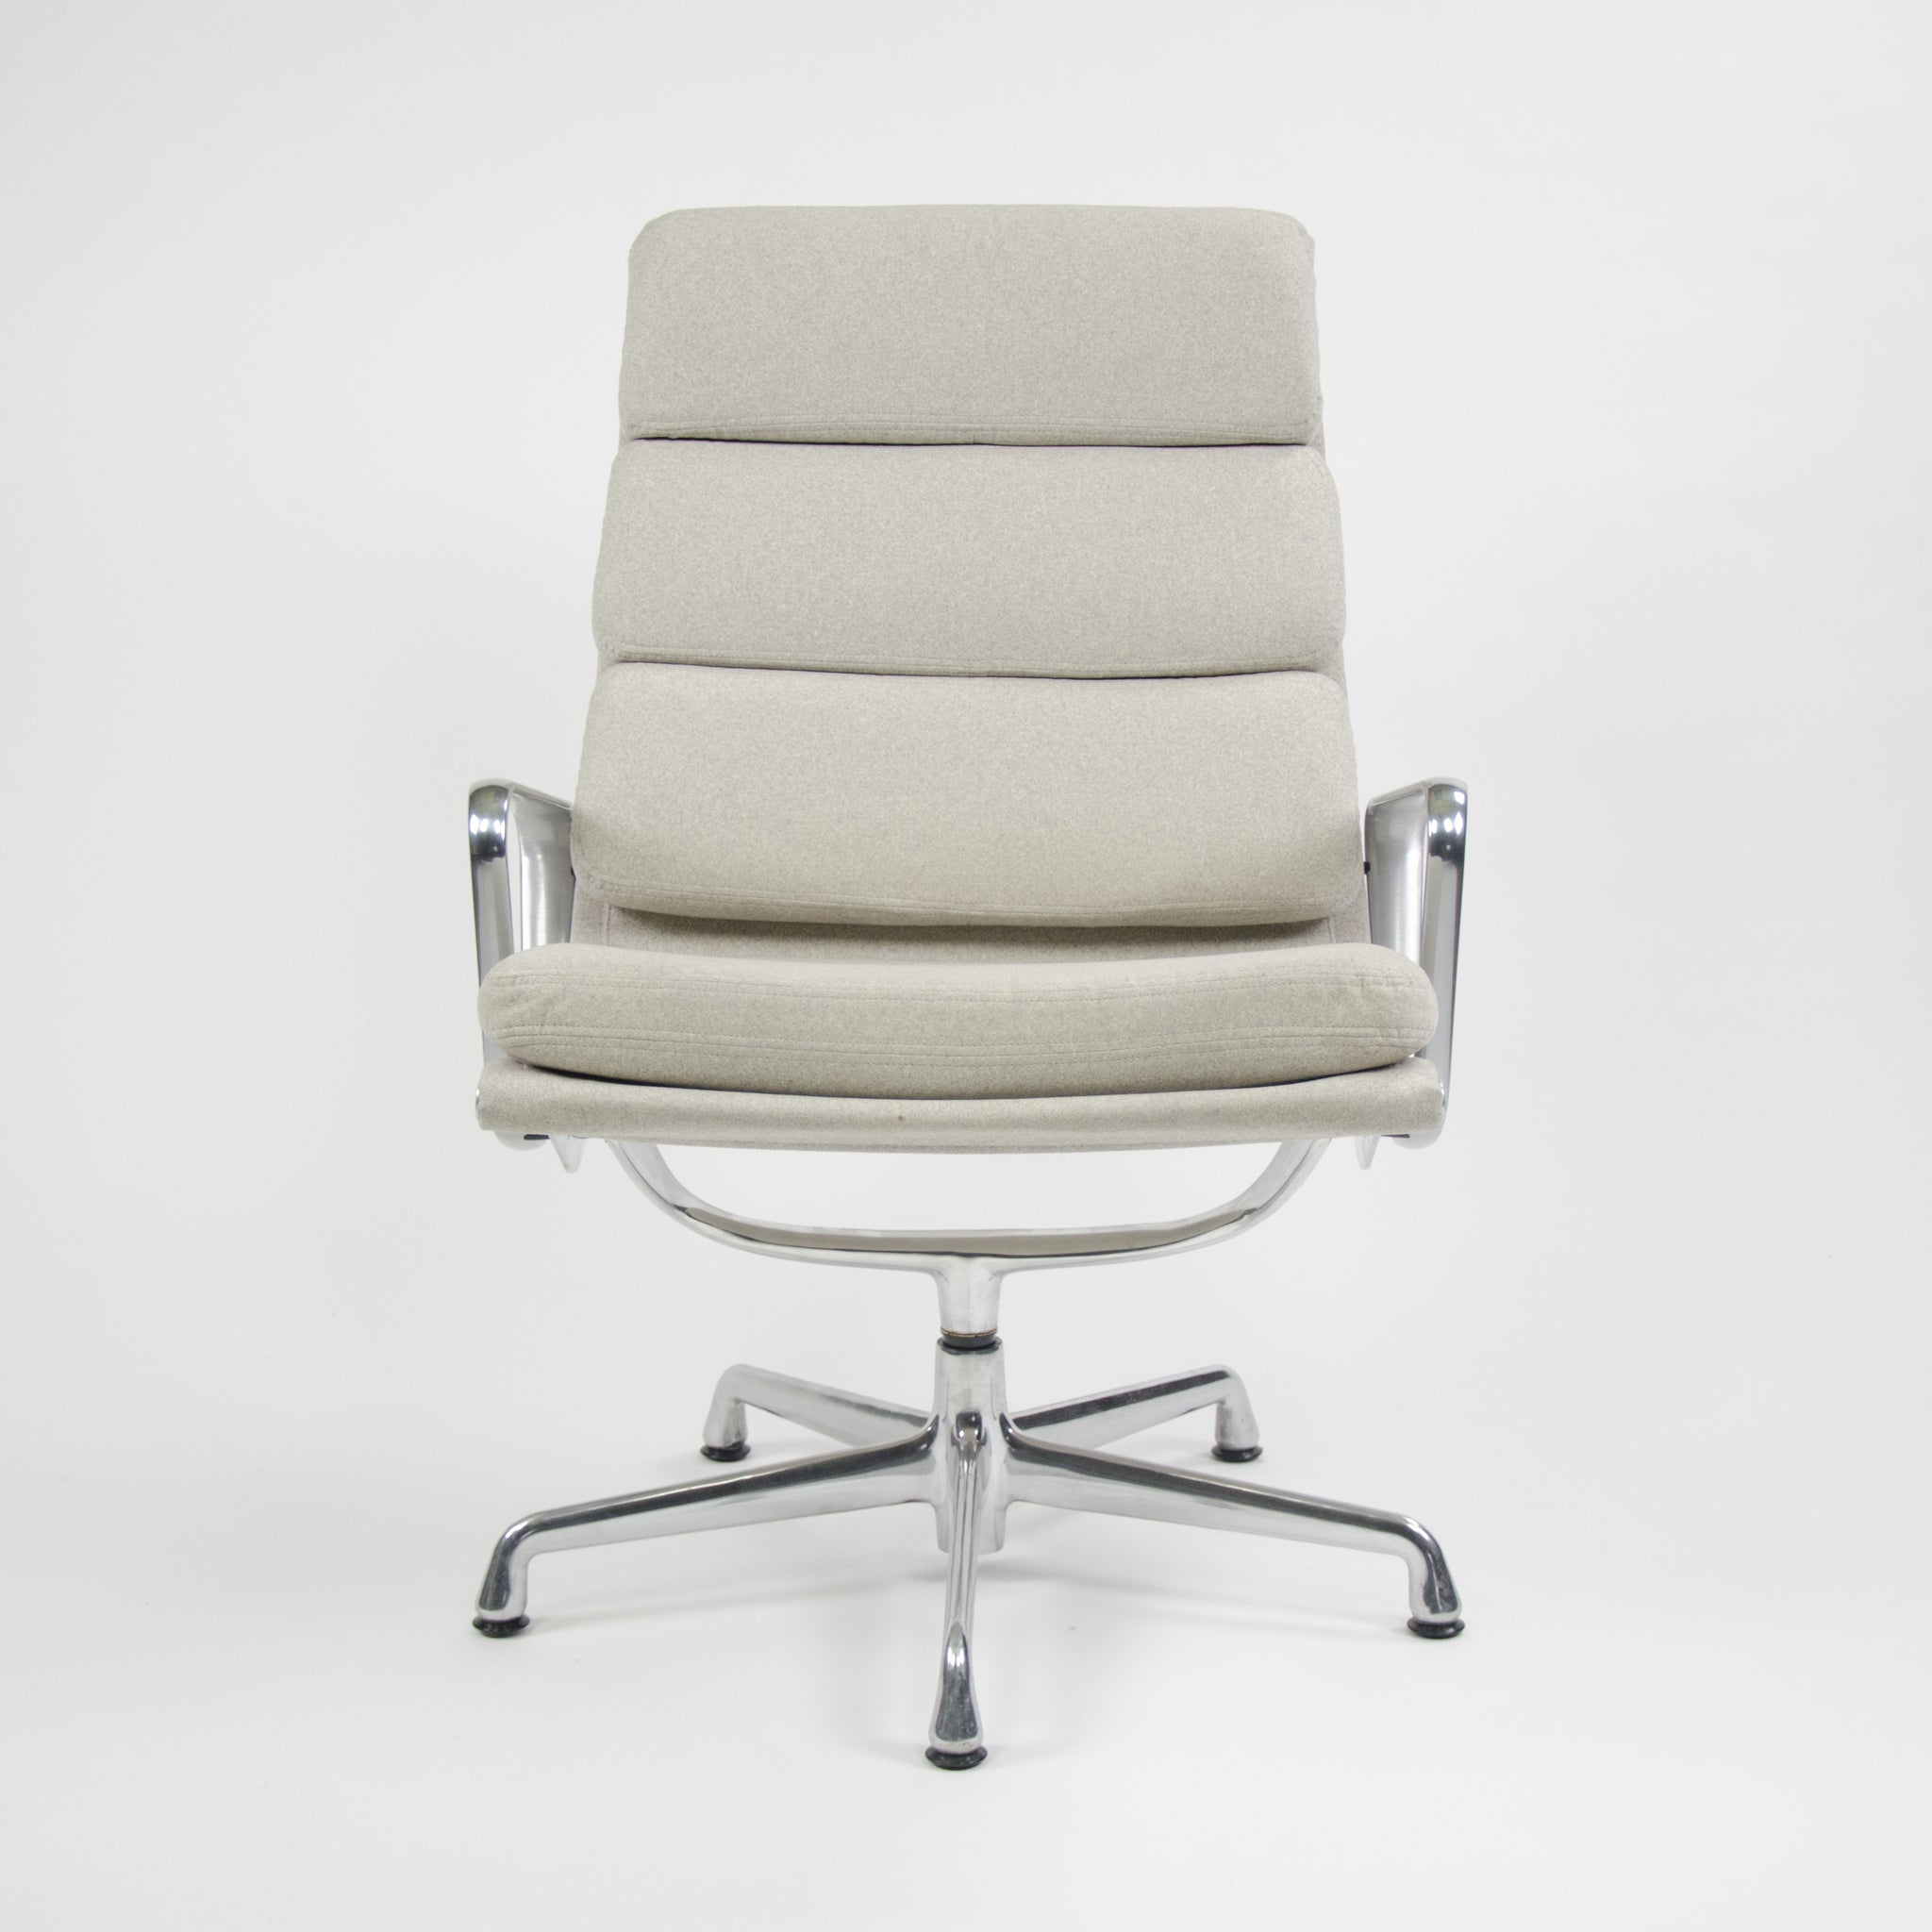 Sold Aluminum Eames Herman Miller Lounge Group Chairs Pad Soft q4A5RL3j